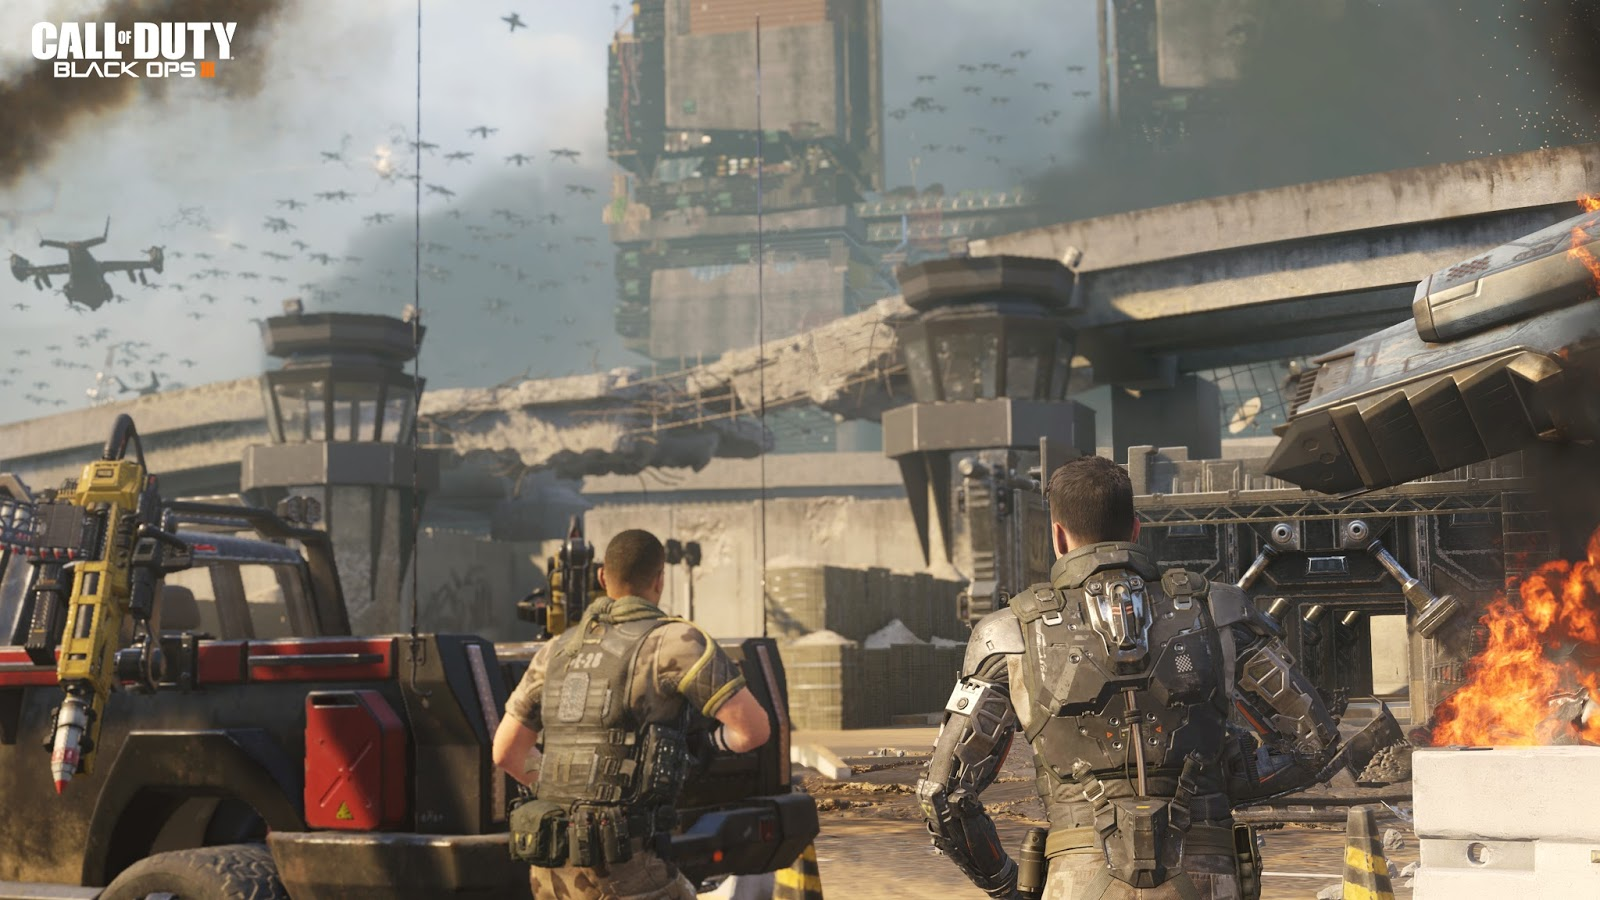 call of duty: black ops 3 review - instatainment